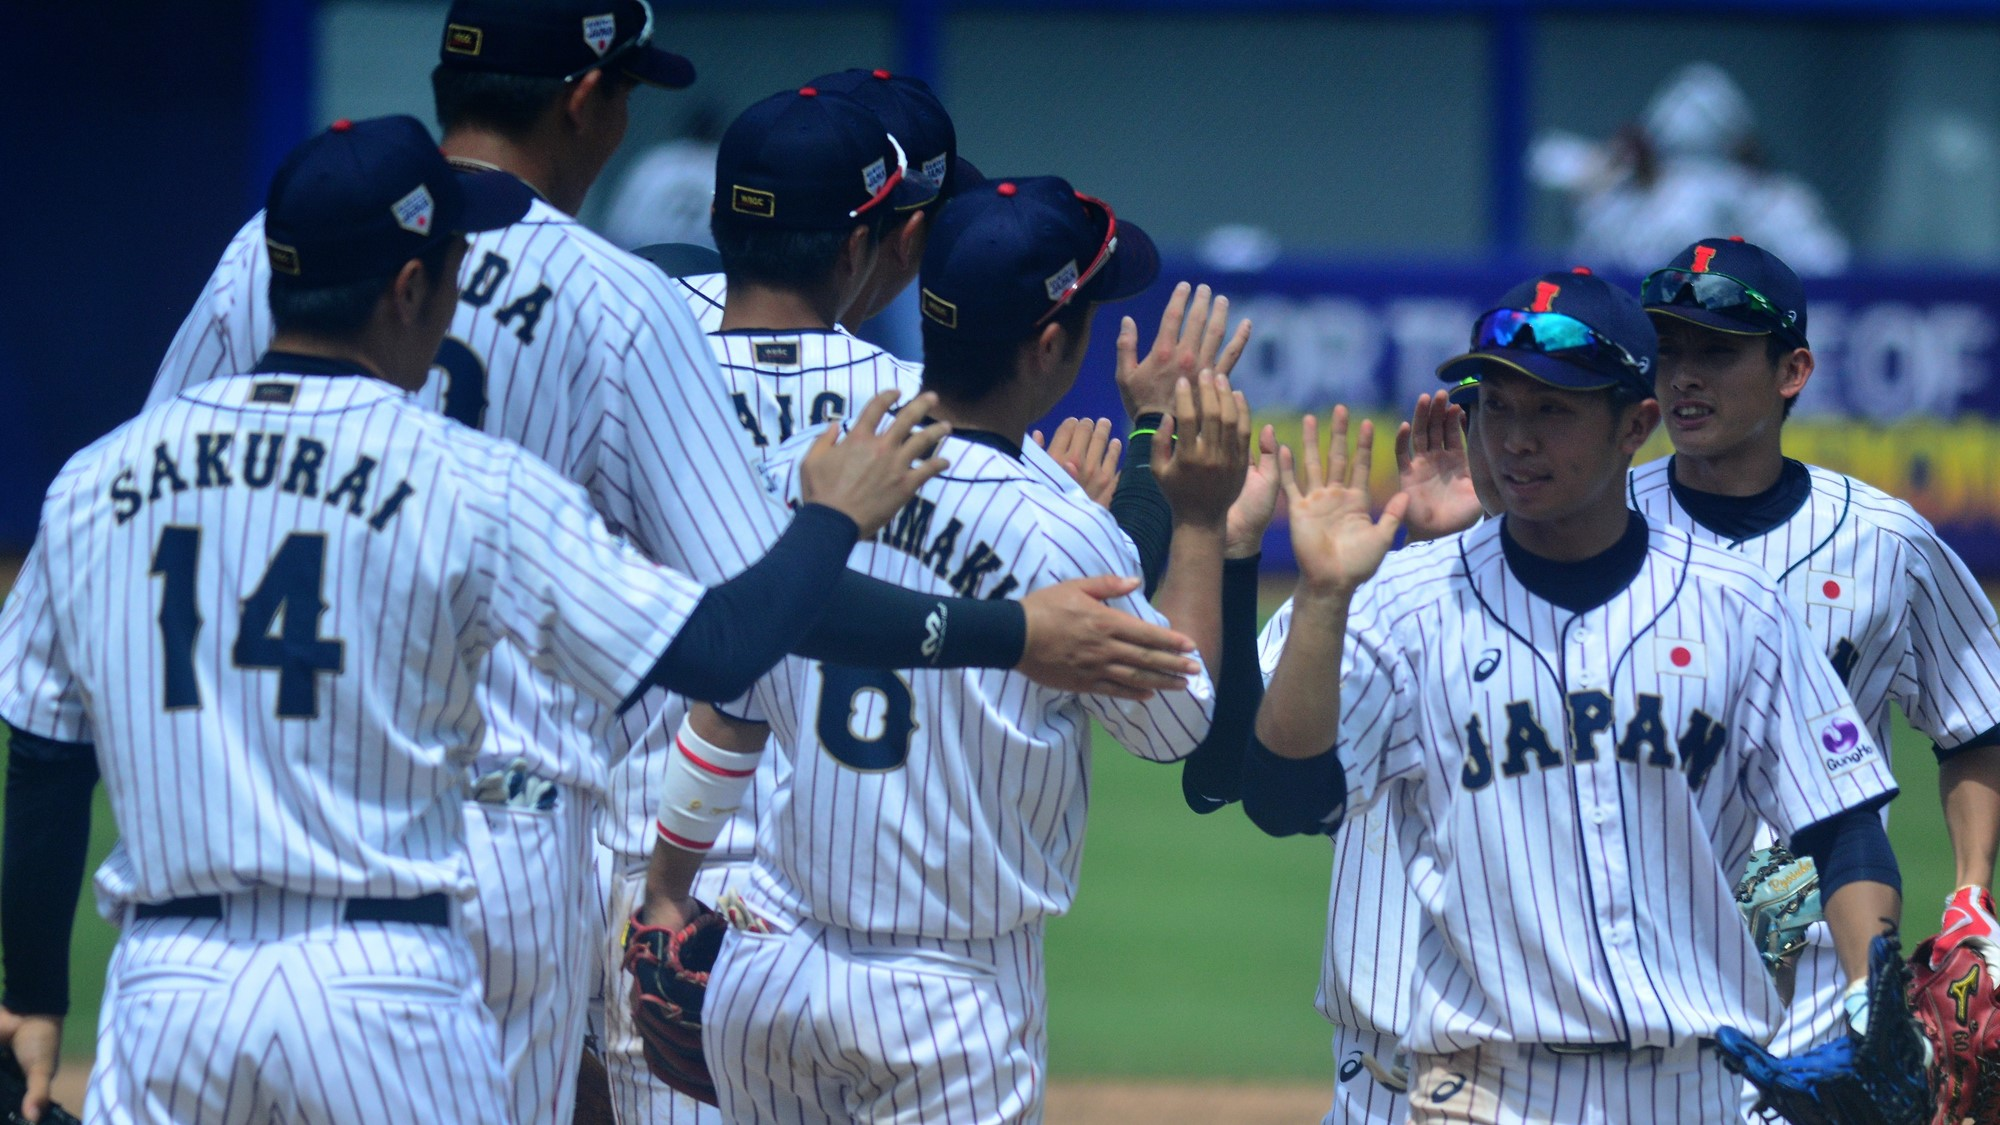 Japan is now certain to be in the super round of the U-23 Baseball World Cup